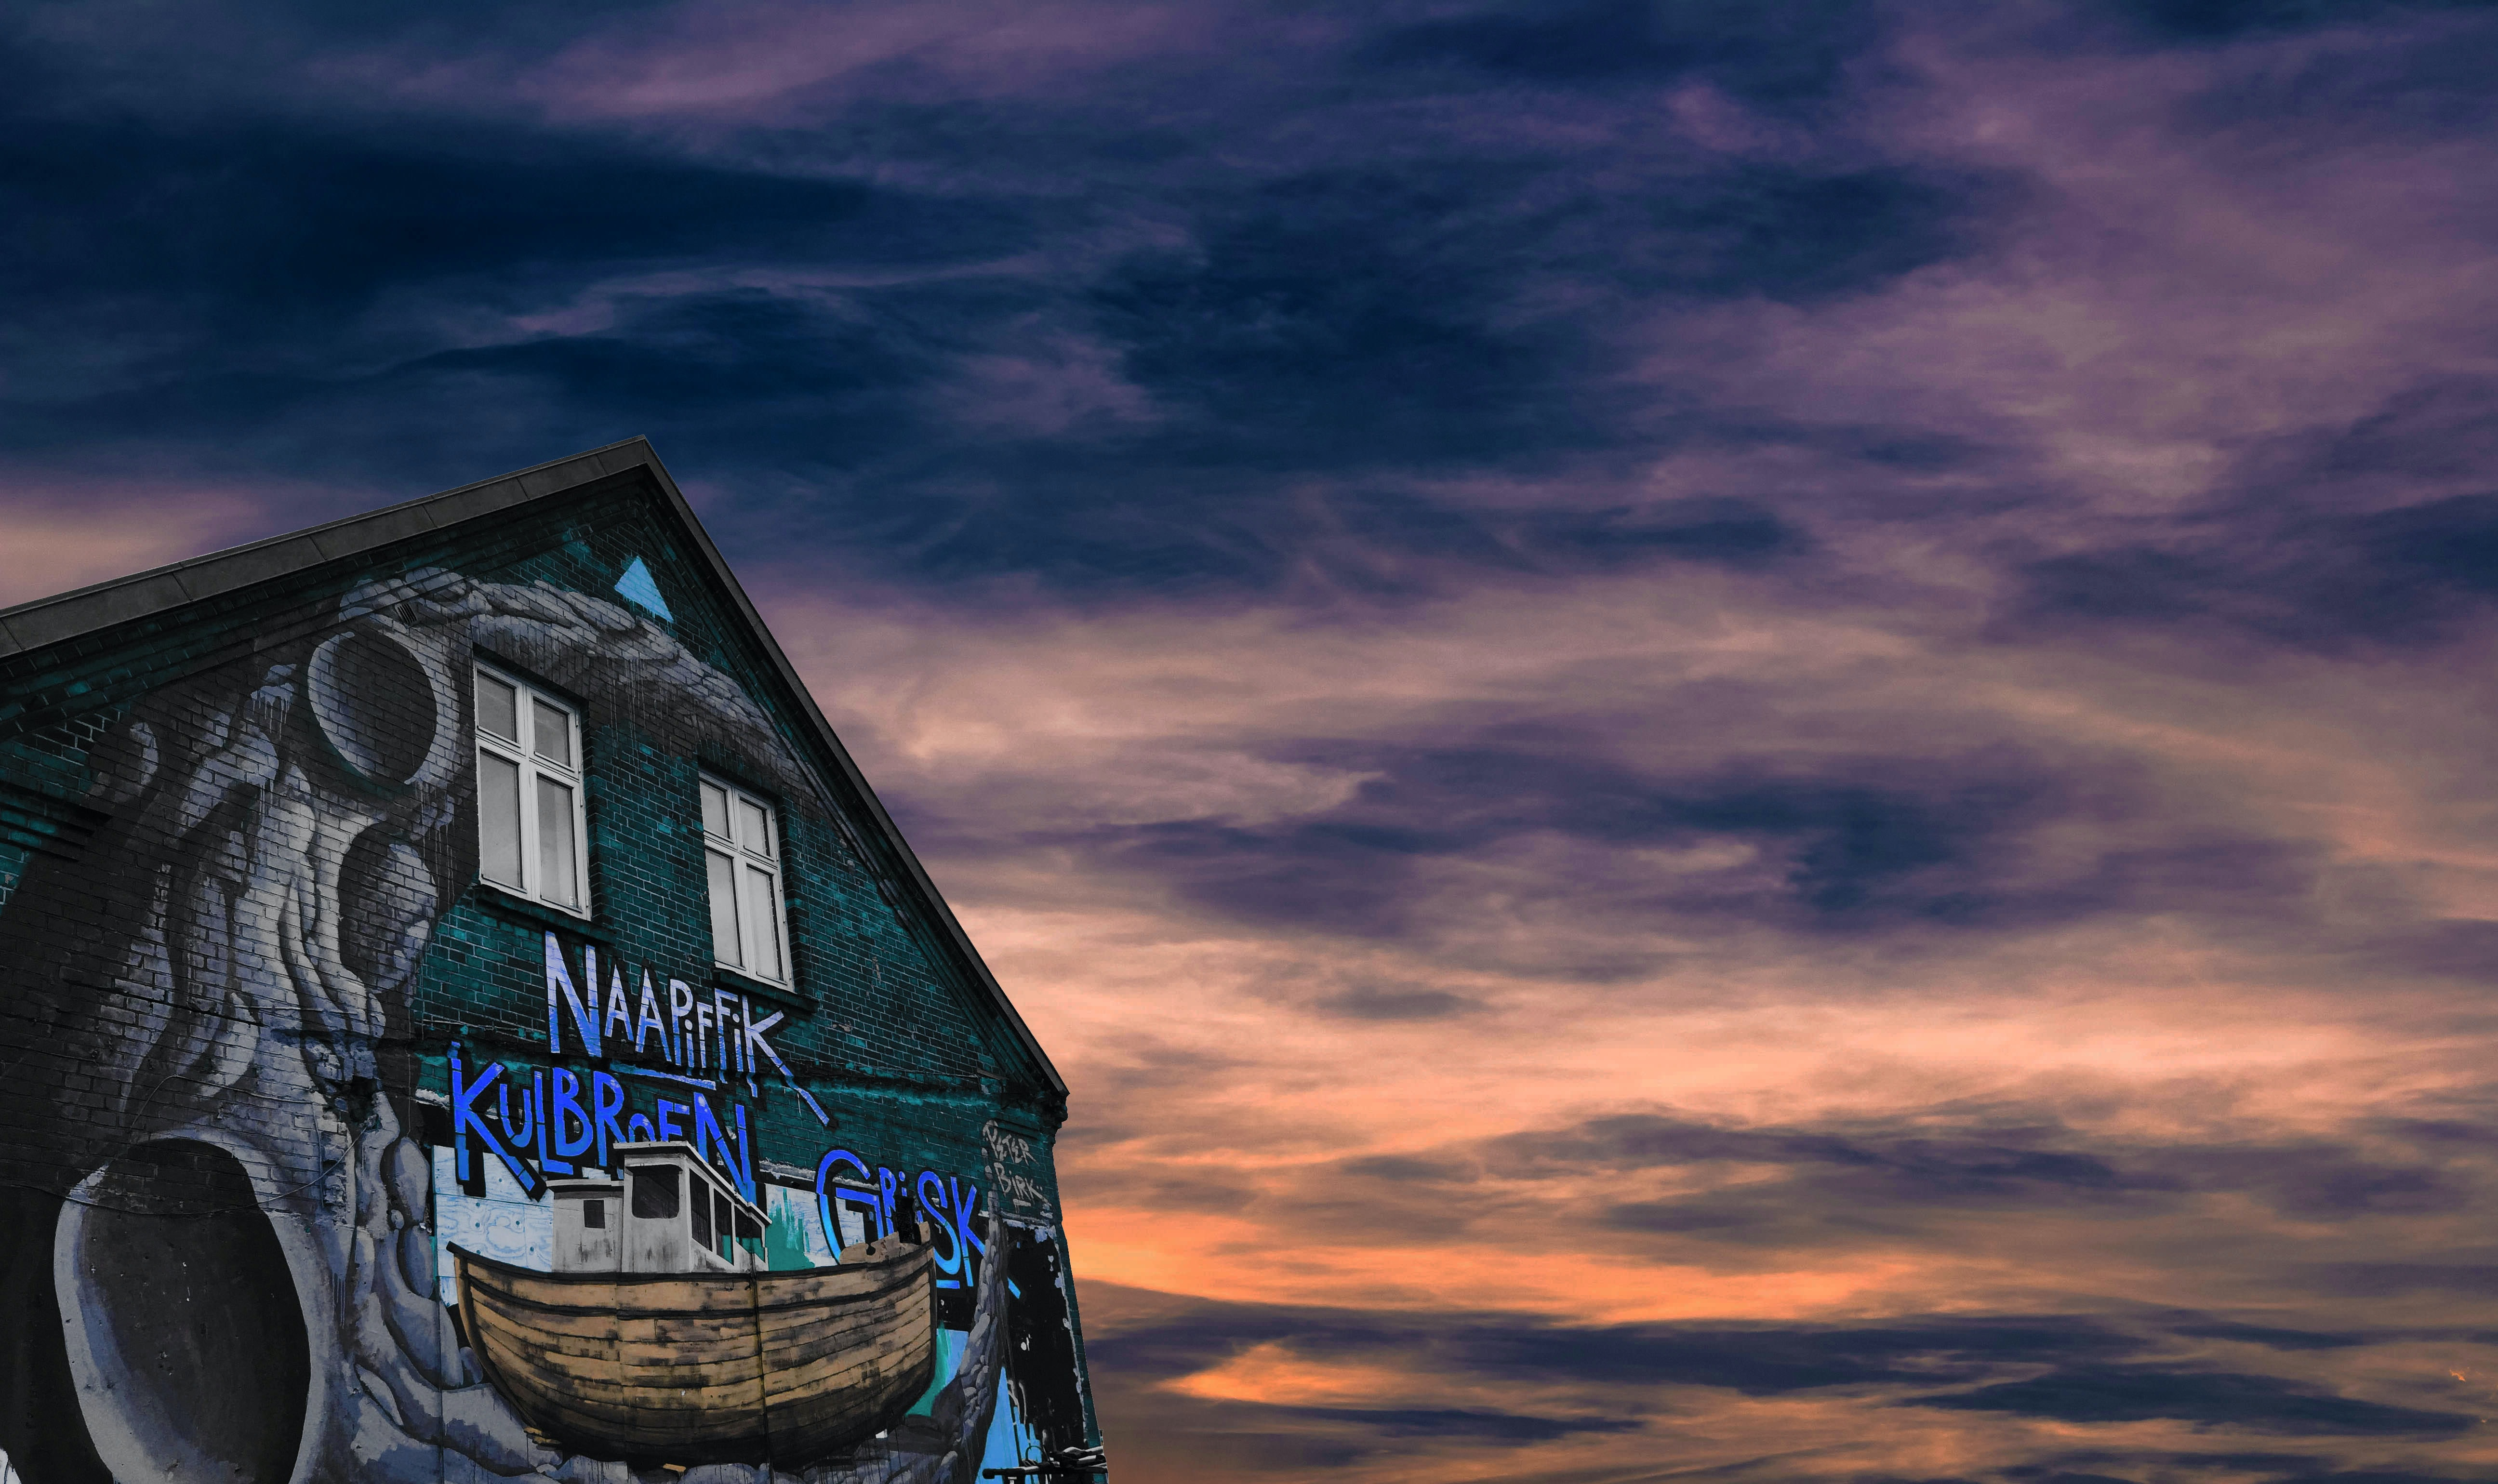 An abandoned looking graffiti covered building with a cloudy sunset in Aarhus, Denmark